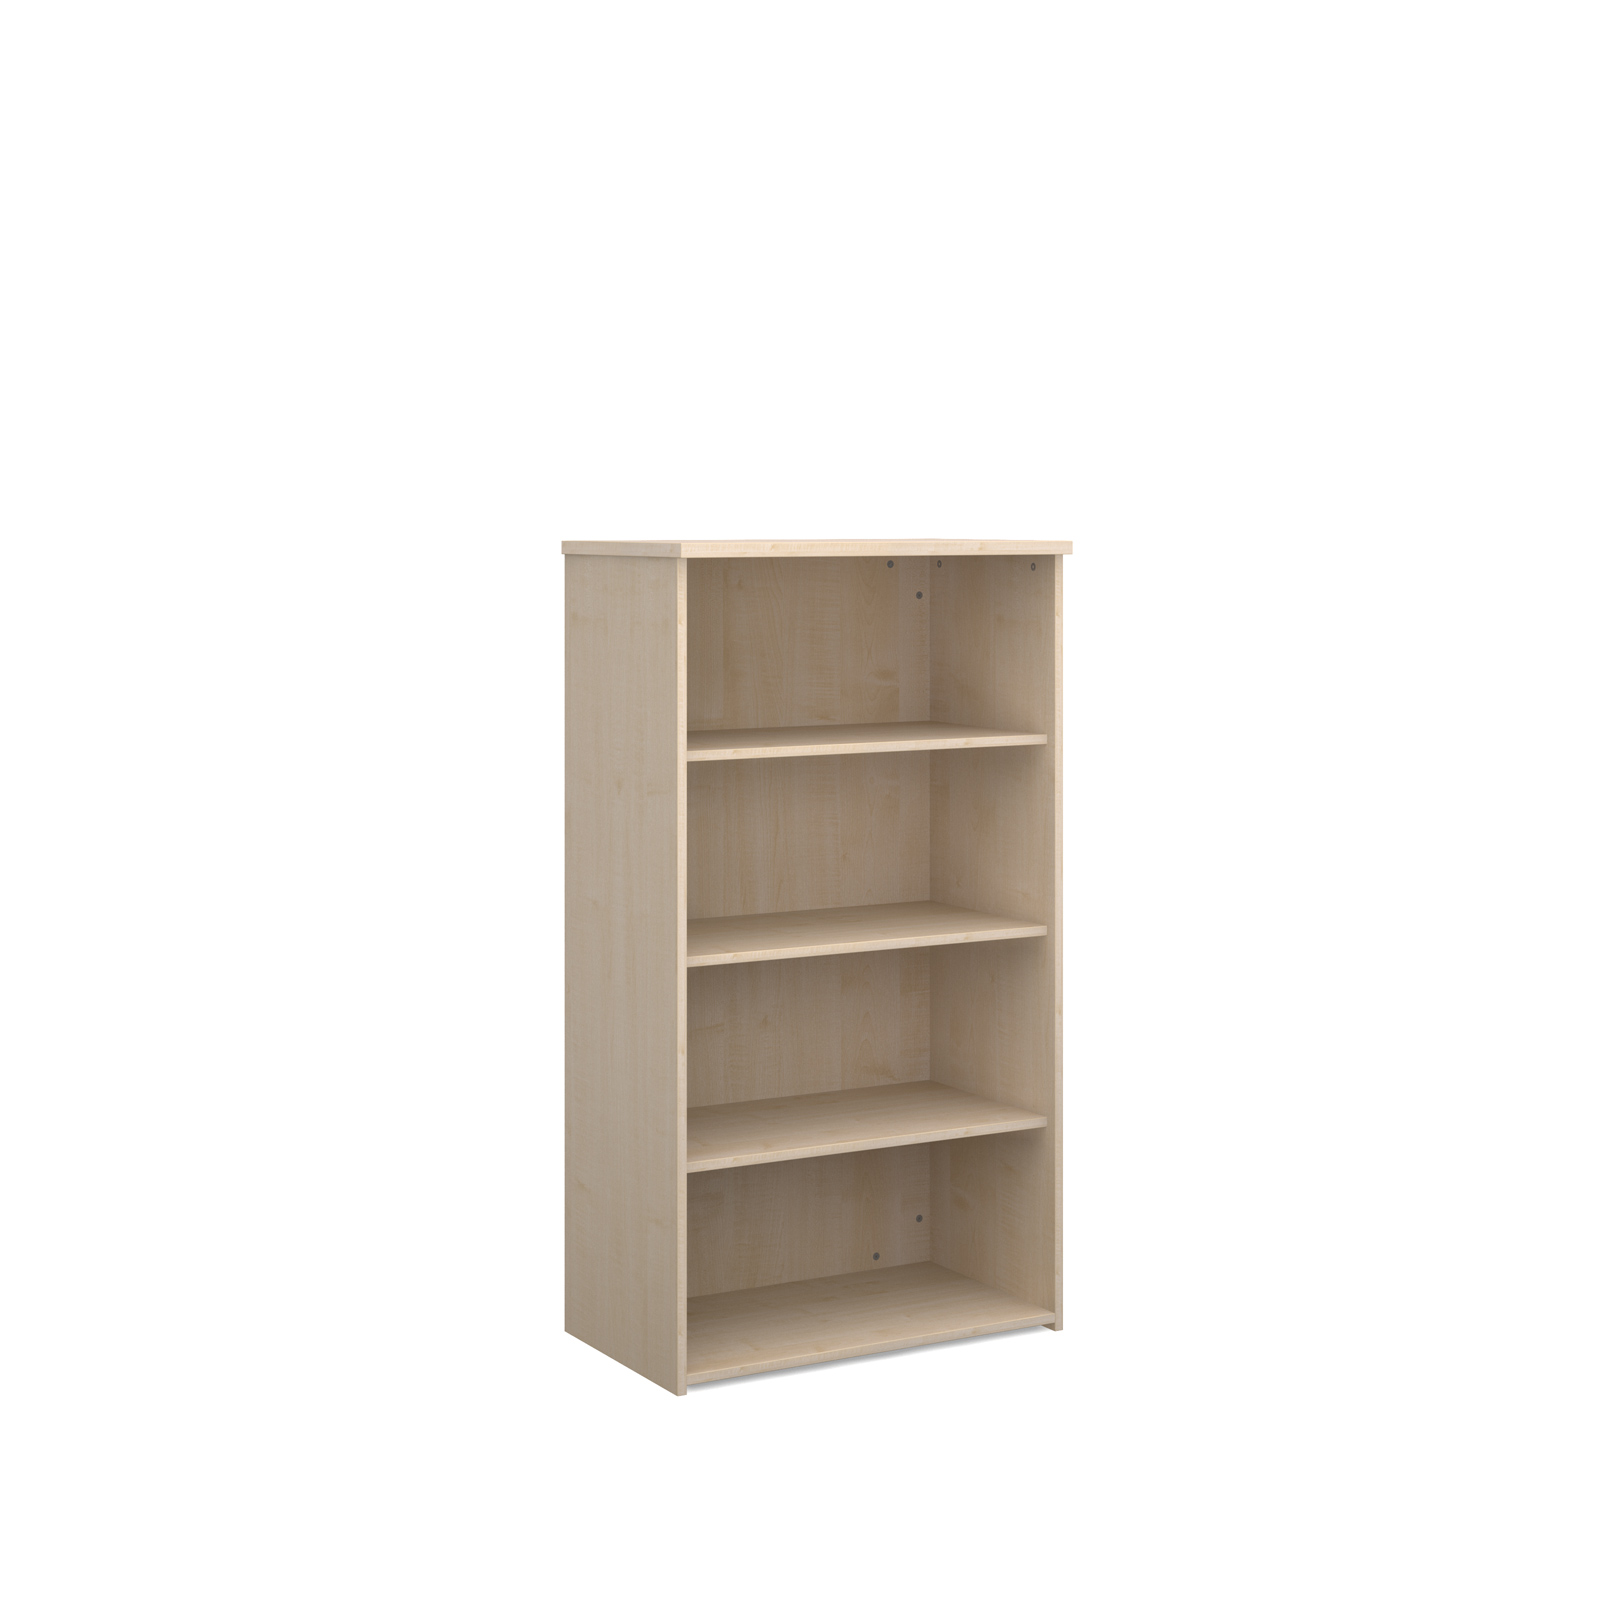 Universal bookcase 1440mm high with 3 shelves - maple